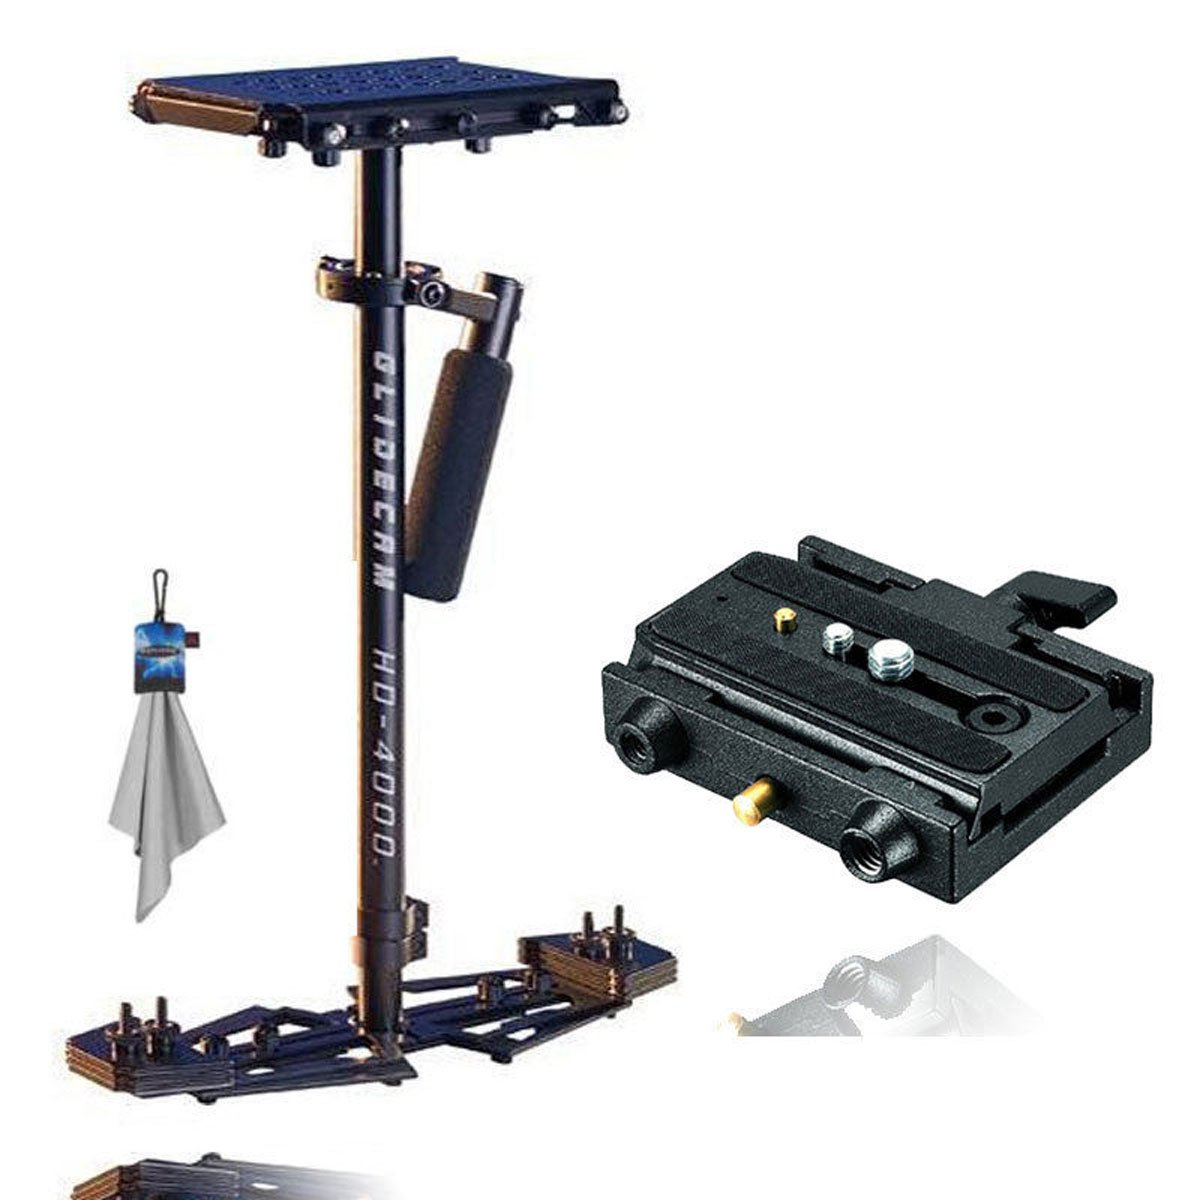 Glidecam HD-4000 Hand-Held Stabilizer + Manfrotto 577 Rapid Connect Adapter with Sliding Mounting Plate+ Spudz Microfiber Cleaning Cloth with Pouch Blue Lightning